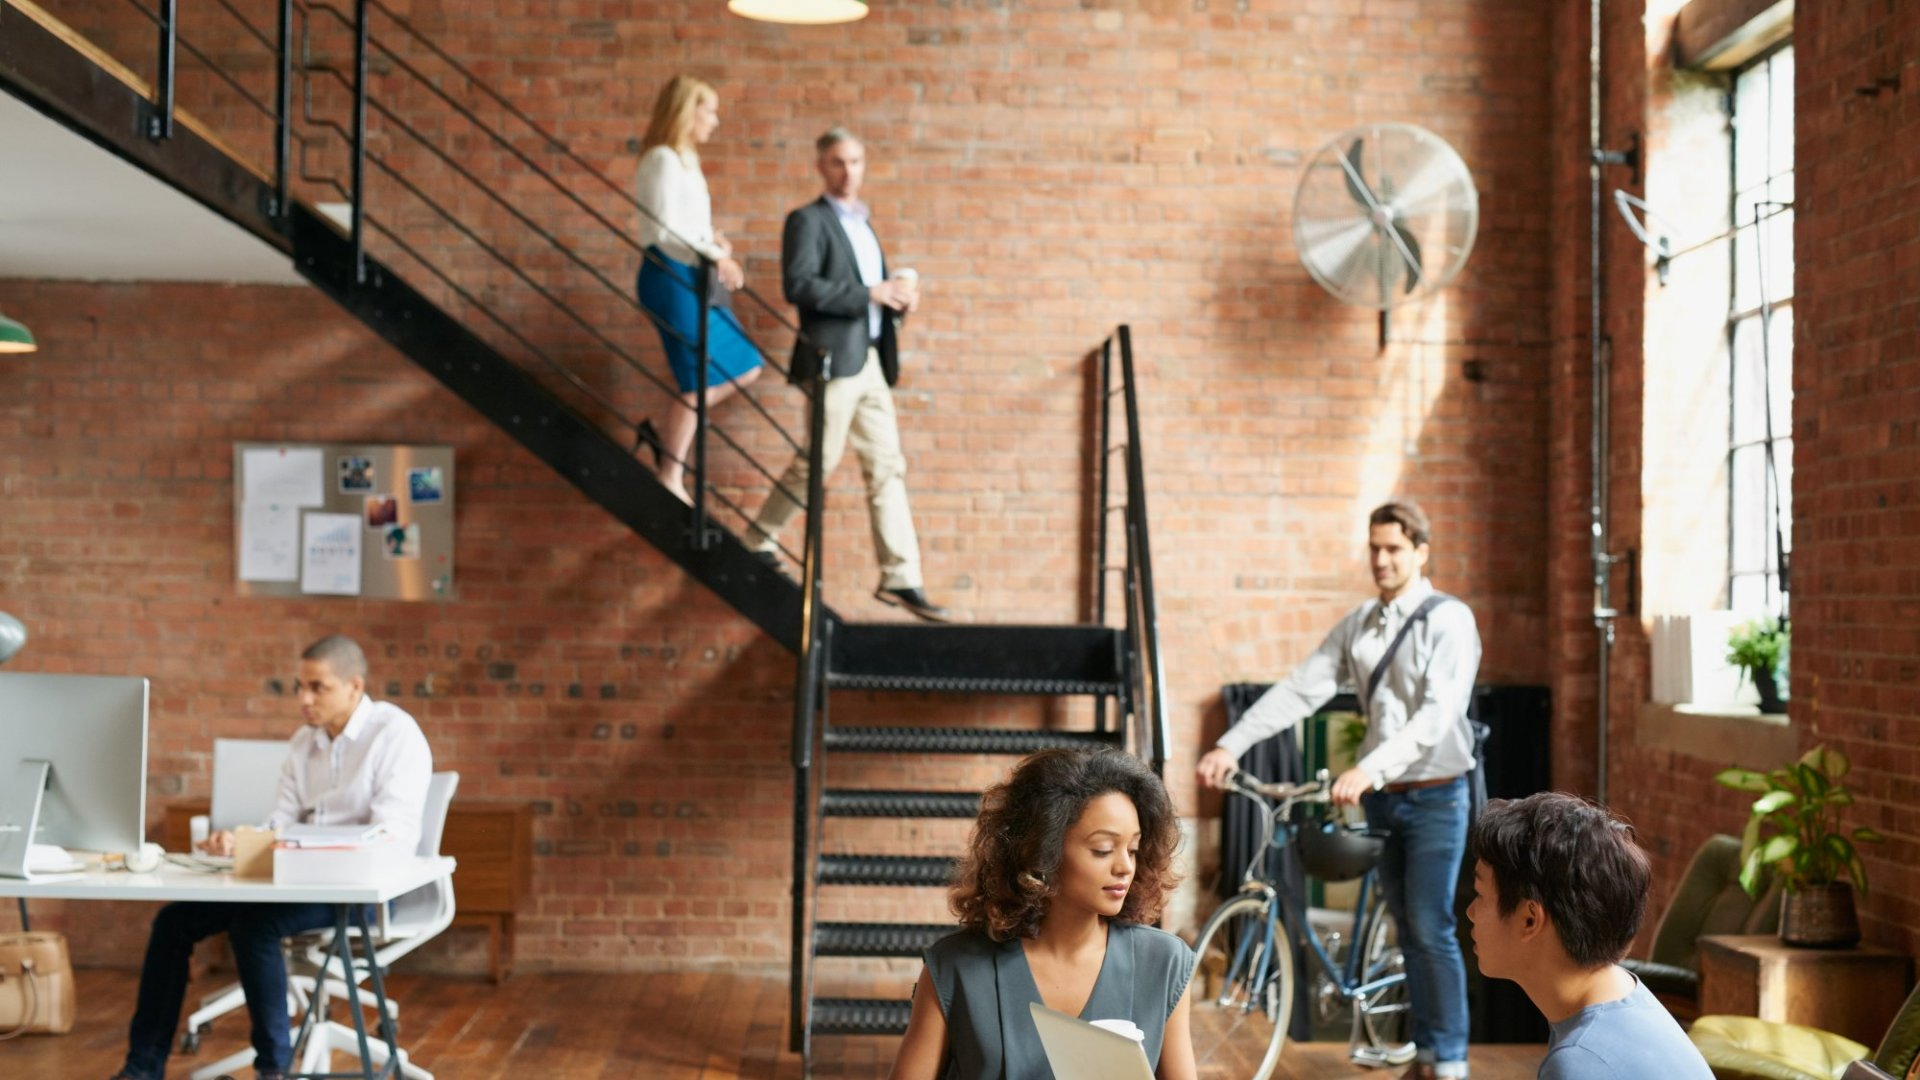 Millennials, Baby Boomers, Gen X All Agree on These 5 Workplace Trends